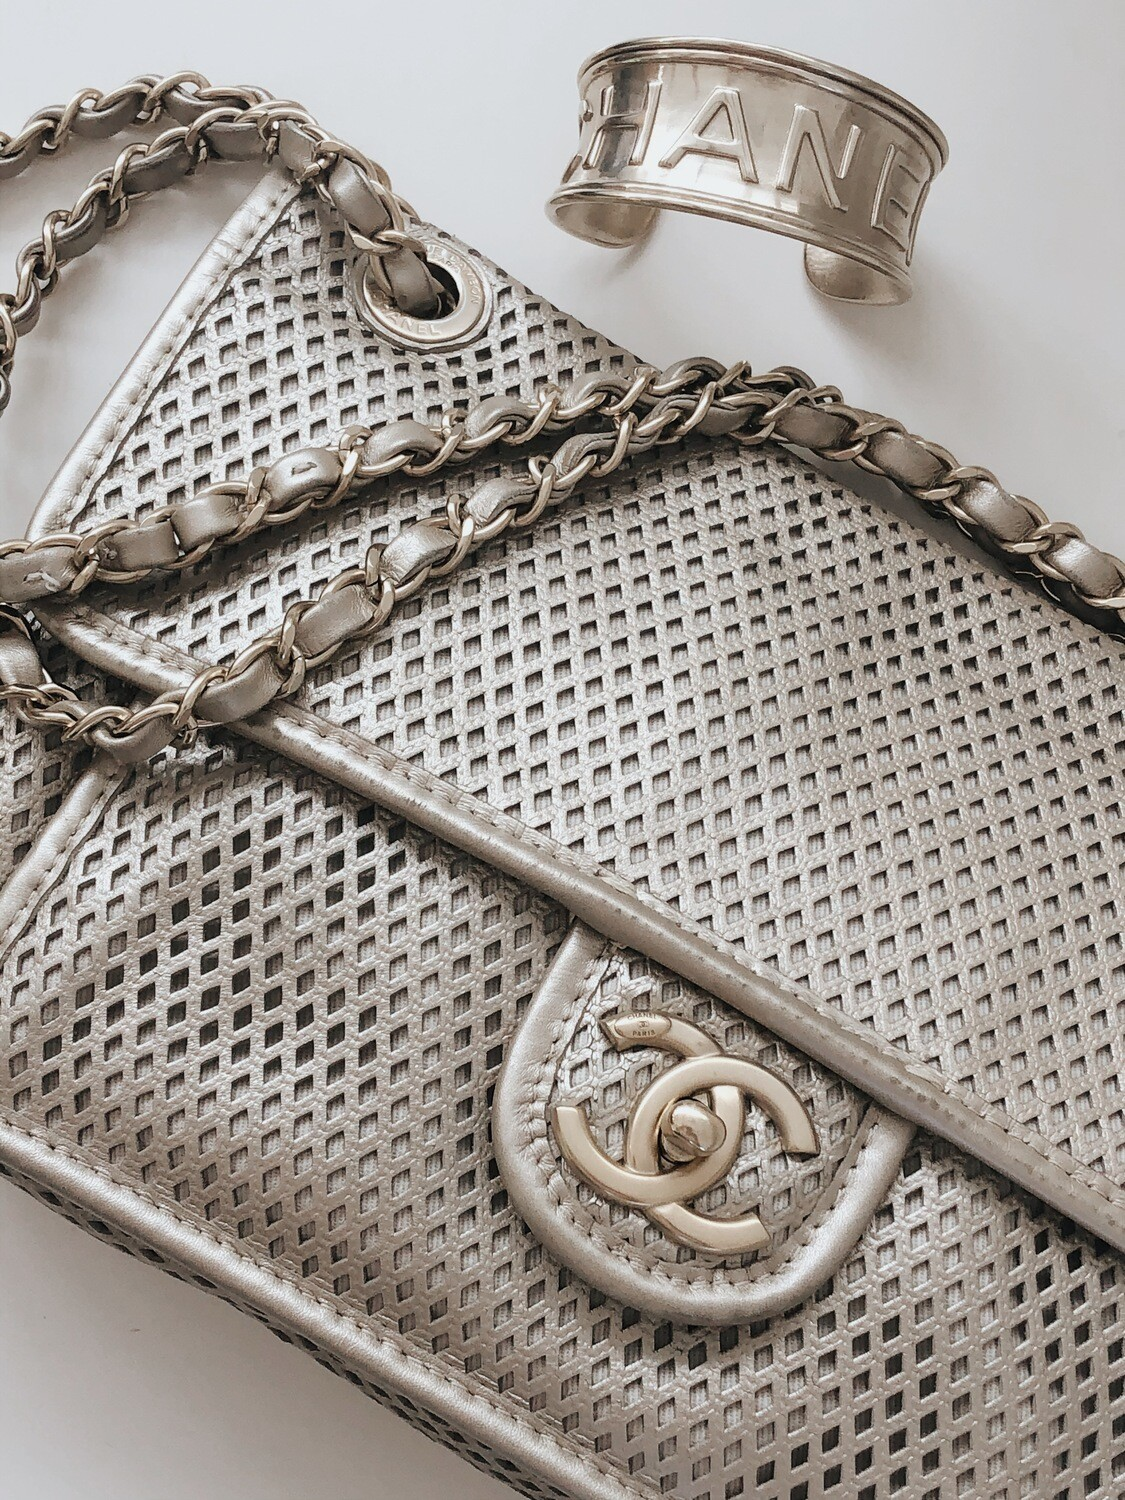 CHANEL CC TURNLOCK PERFORATED FLAP DOUBLE CHAIN BAG